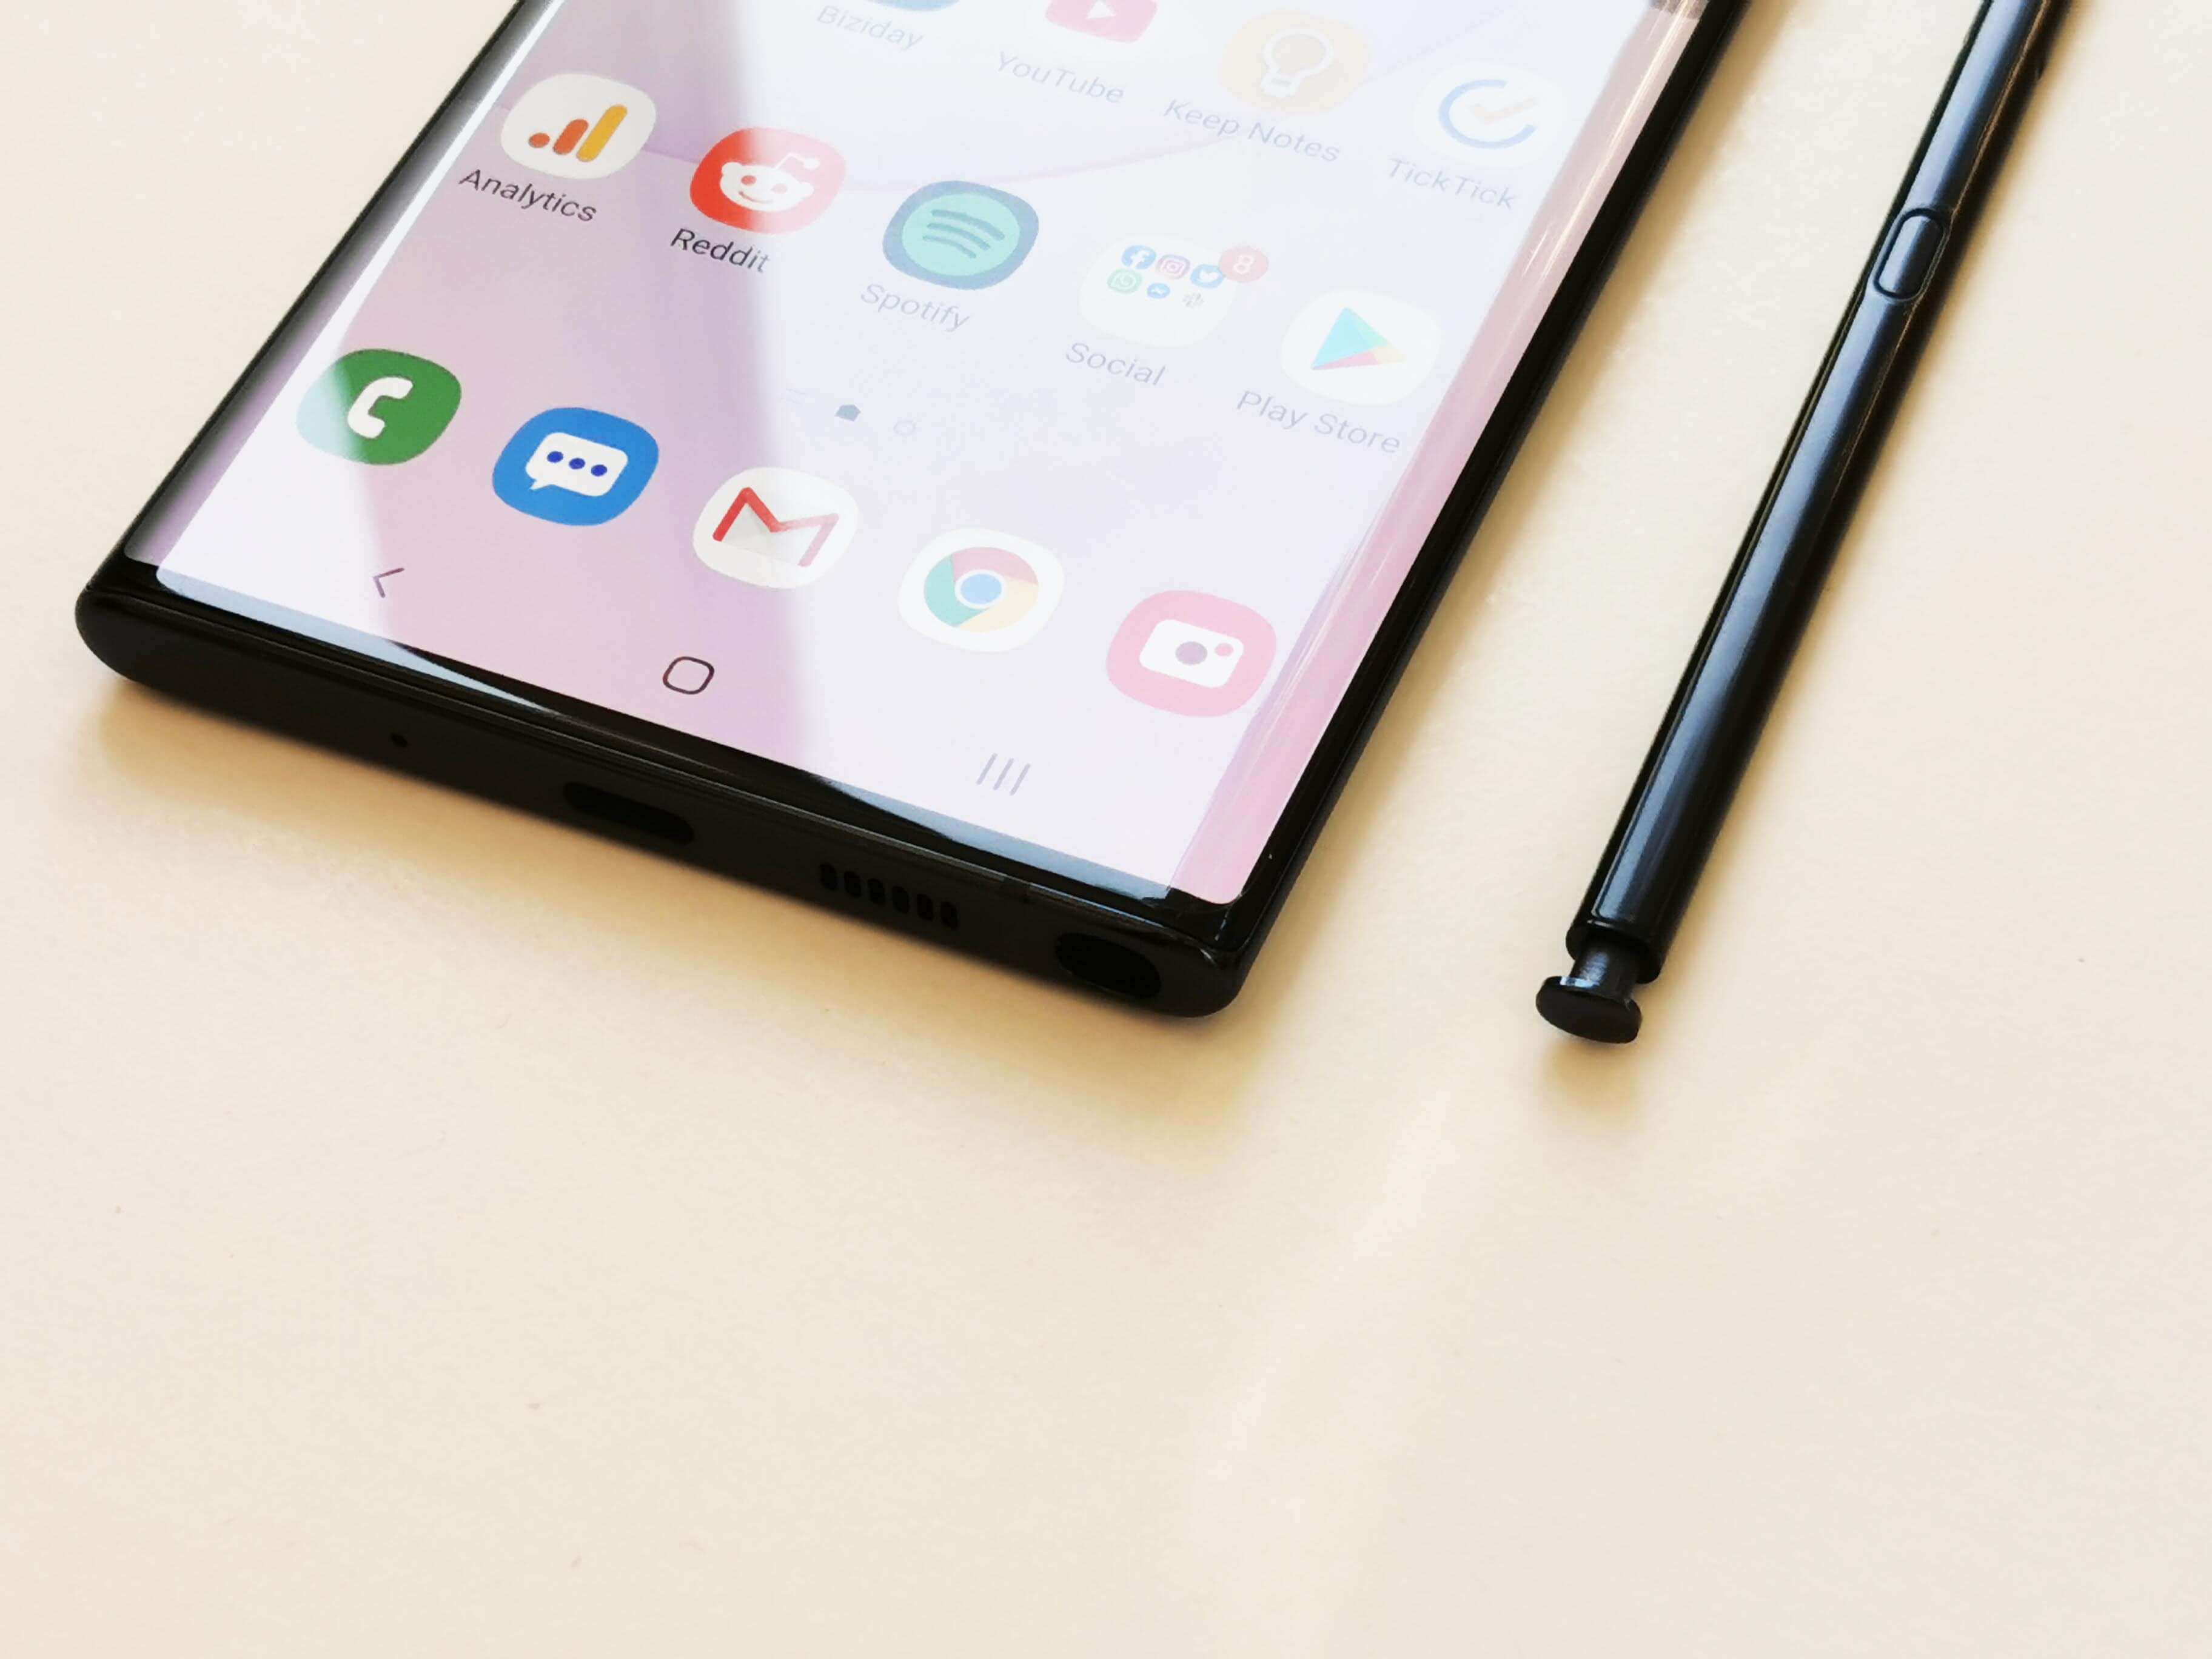 Samsung Galaxy Note10 Plus Review Romana si Pareri - 6